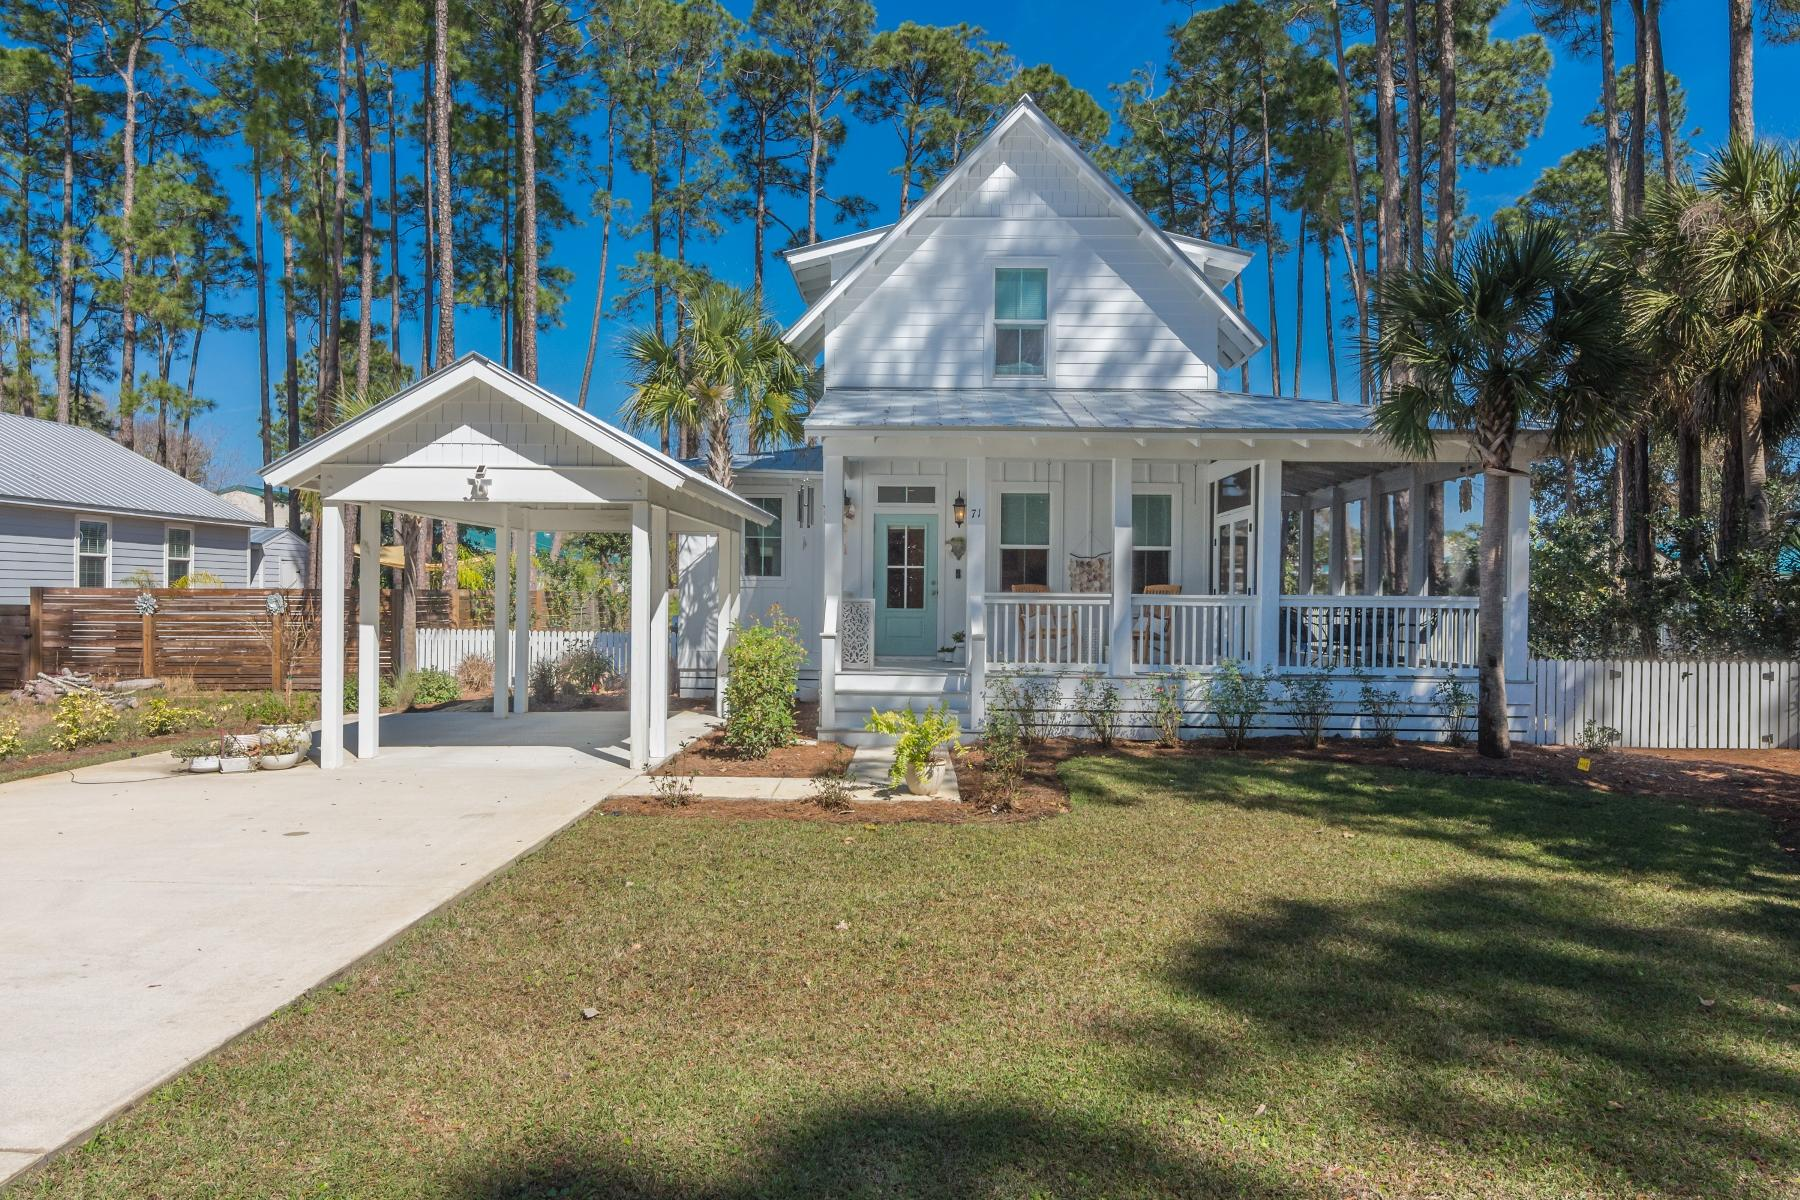 This Coastal Cottage is designed with beach living in mind.  Built in 2019, this Southern Living Home Design is located within 1/2 mile of the beach access on 30A.  The home features an open concept living area, dining room & kitchen with stainless steel appliances and quartz countertops. The cozy fireplace completes the living area.  The Master Bedroom Suite w/spacious bathroom is conveniently located on the first floor along with a guest powder room and a laundry room.  The large, fully fenced back yard has enough space to add a private pool.  An oversized side screened porch completes the beach living experience. On the Second Level you will find two additional bedrooms and a Full bath.  Sold Furnished with three excluded items.  All information & dimensions should be verified by Buyer